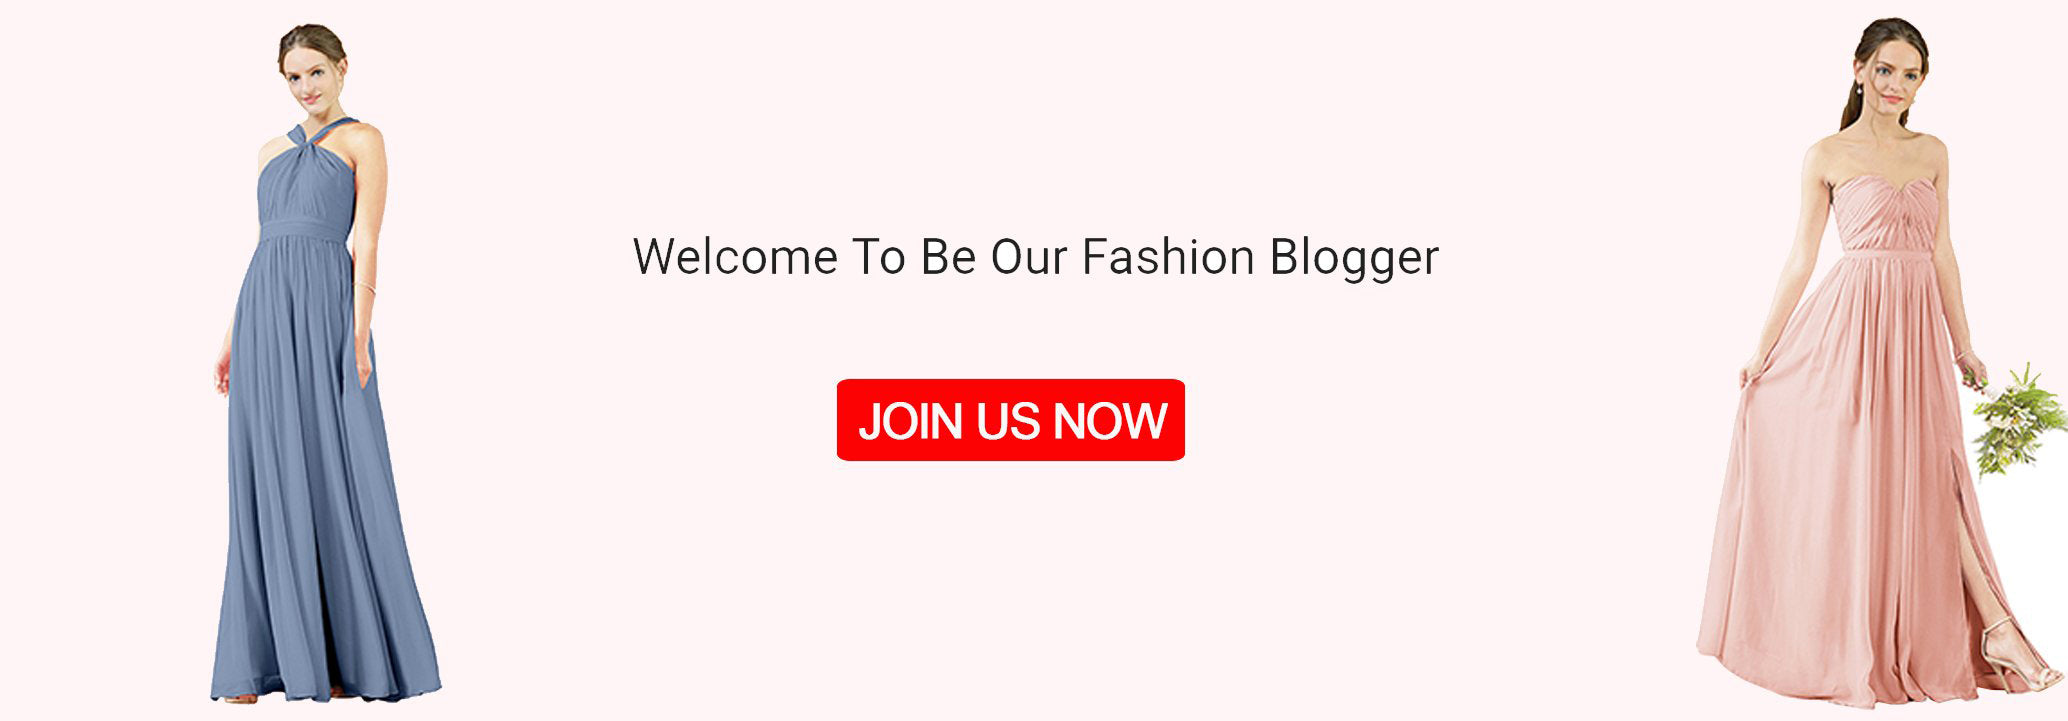 welcome to be fashion blogger